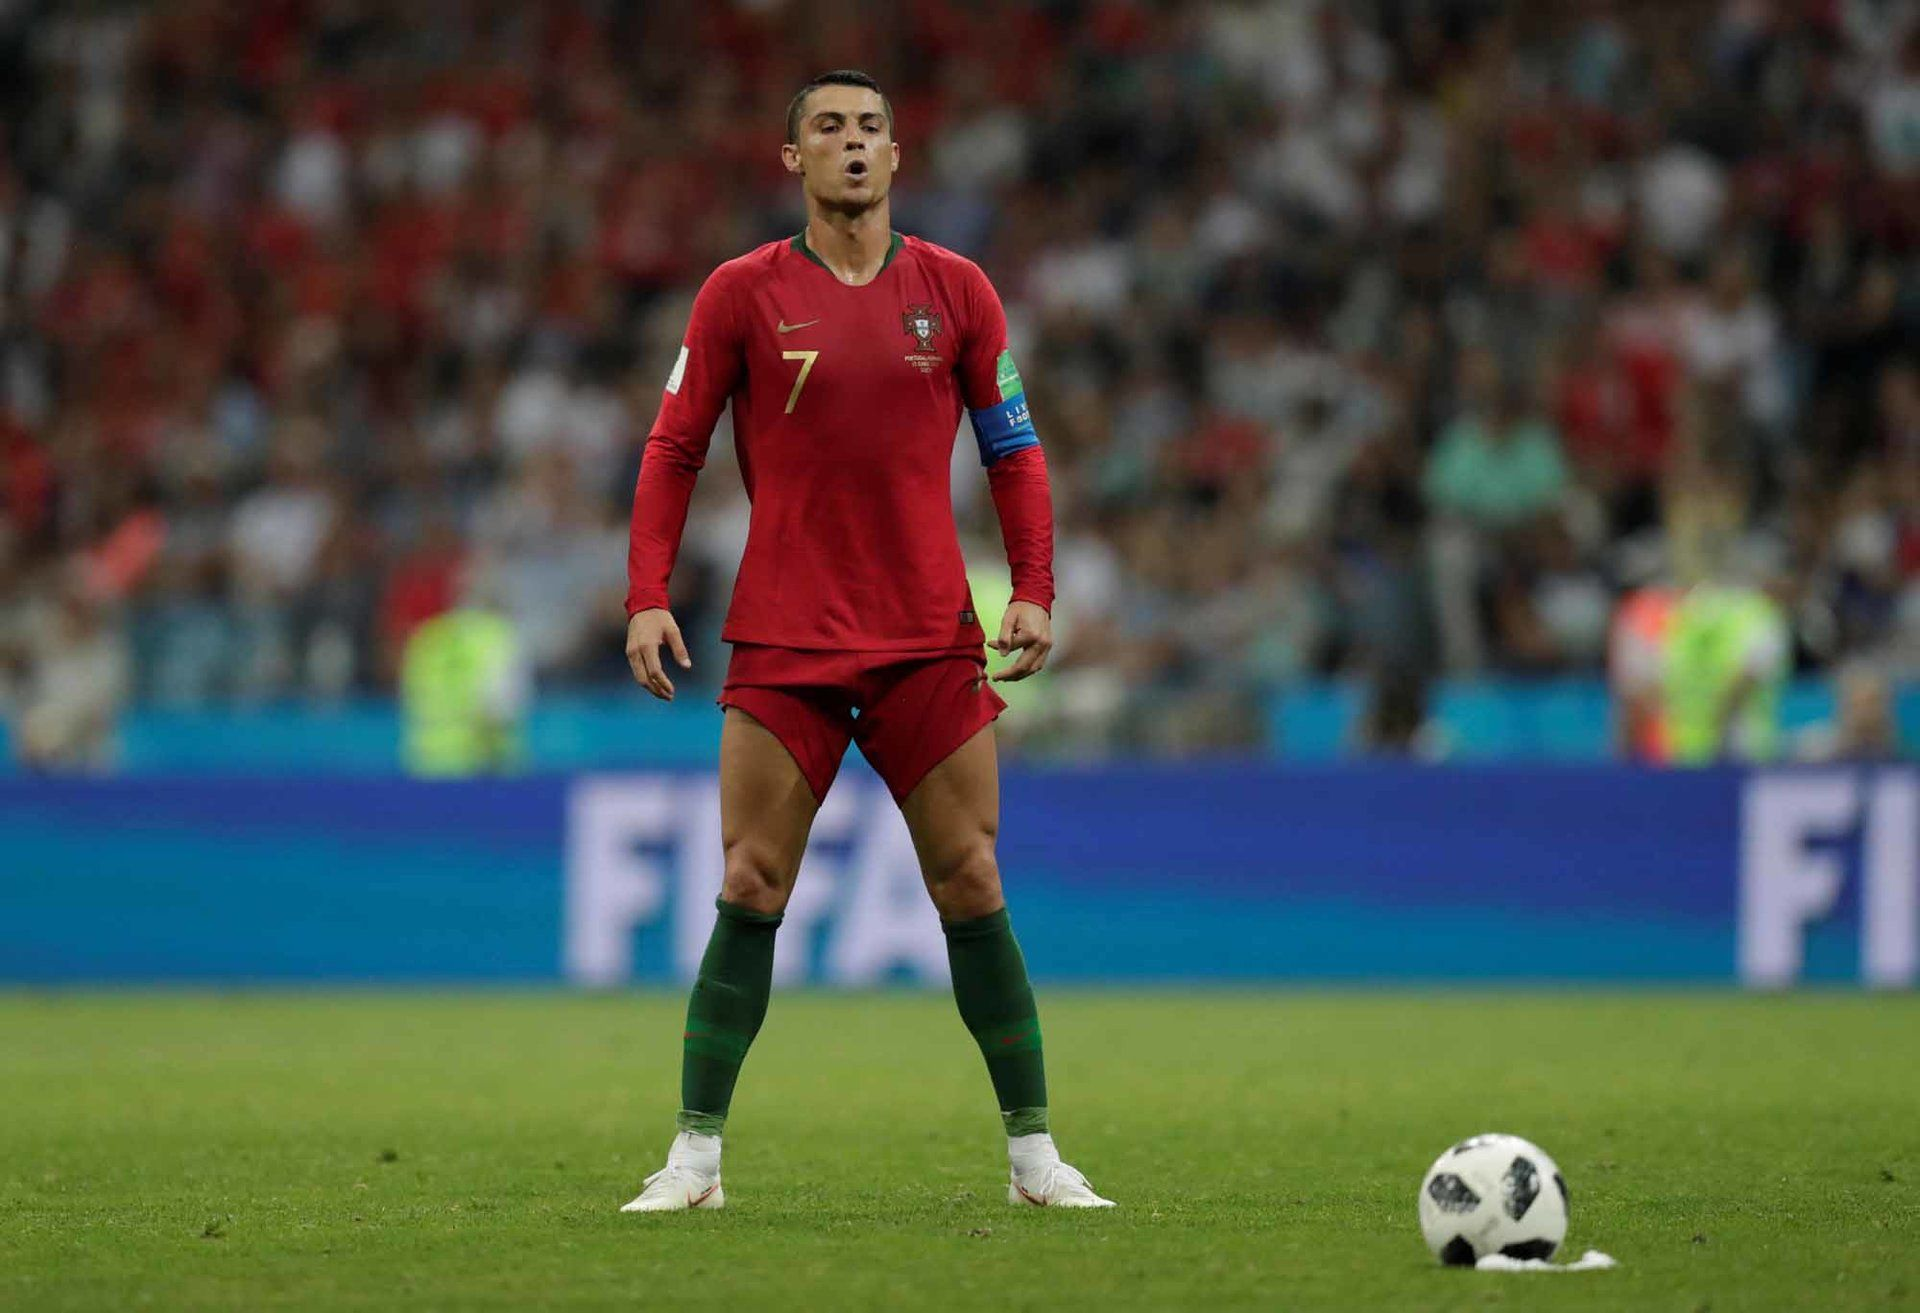 The Most Mesmerizing Photos From The World Cup Cristiano Ronaldo Ronaldo World Cup